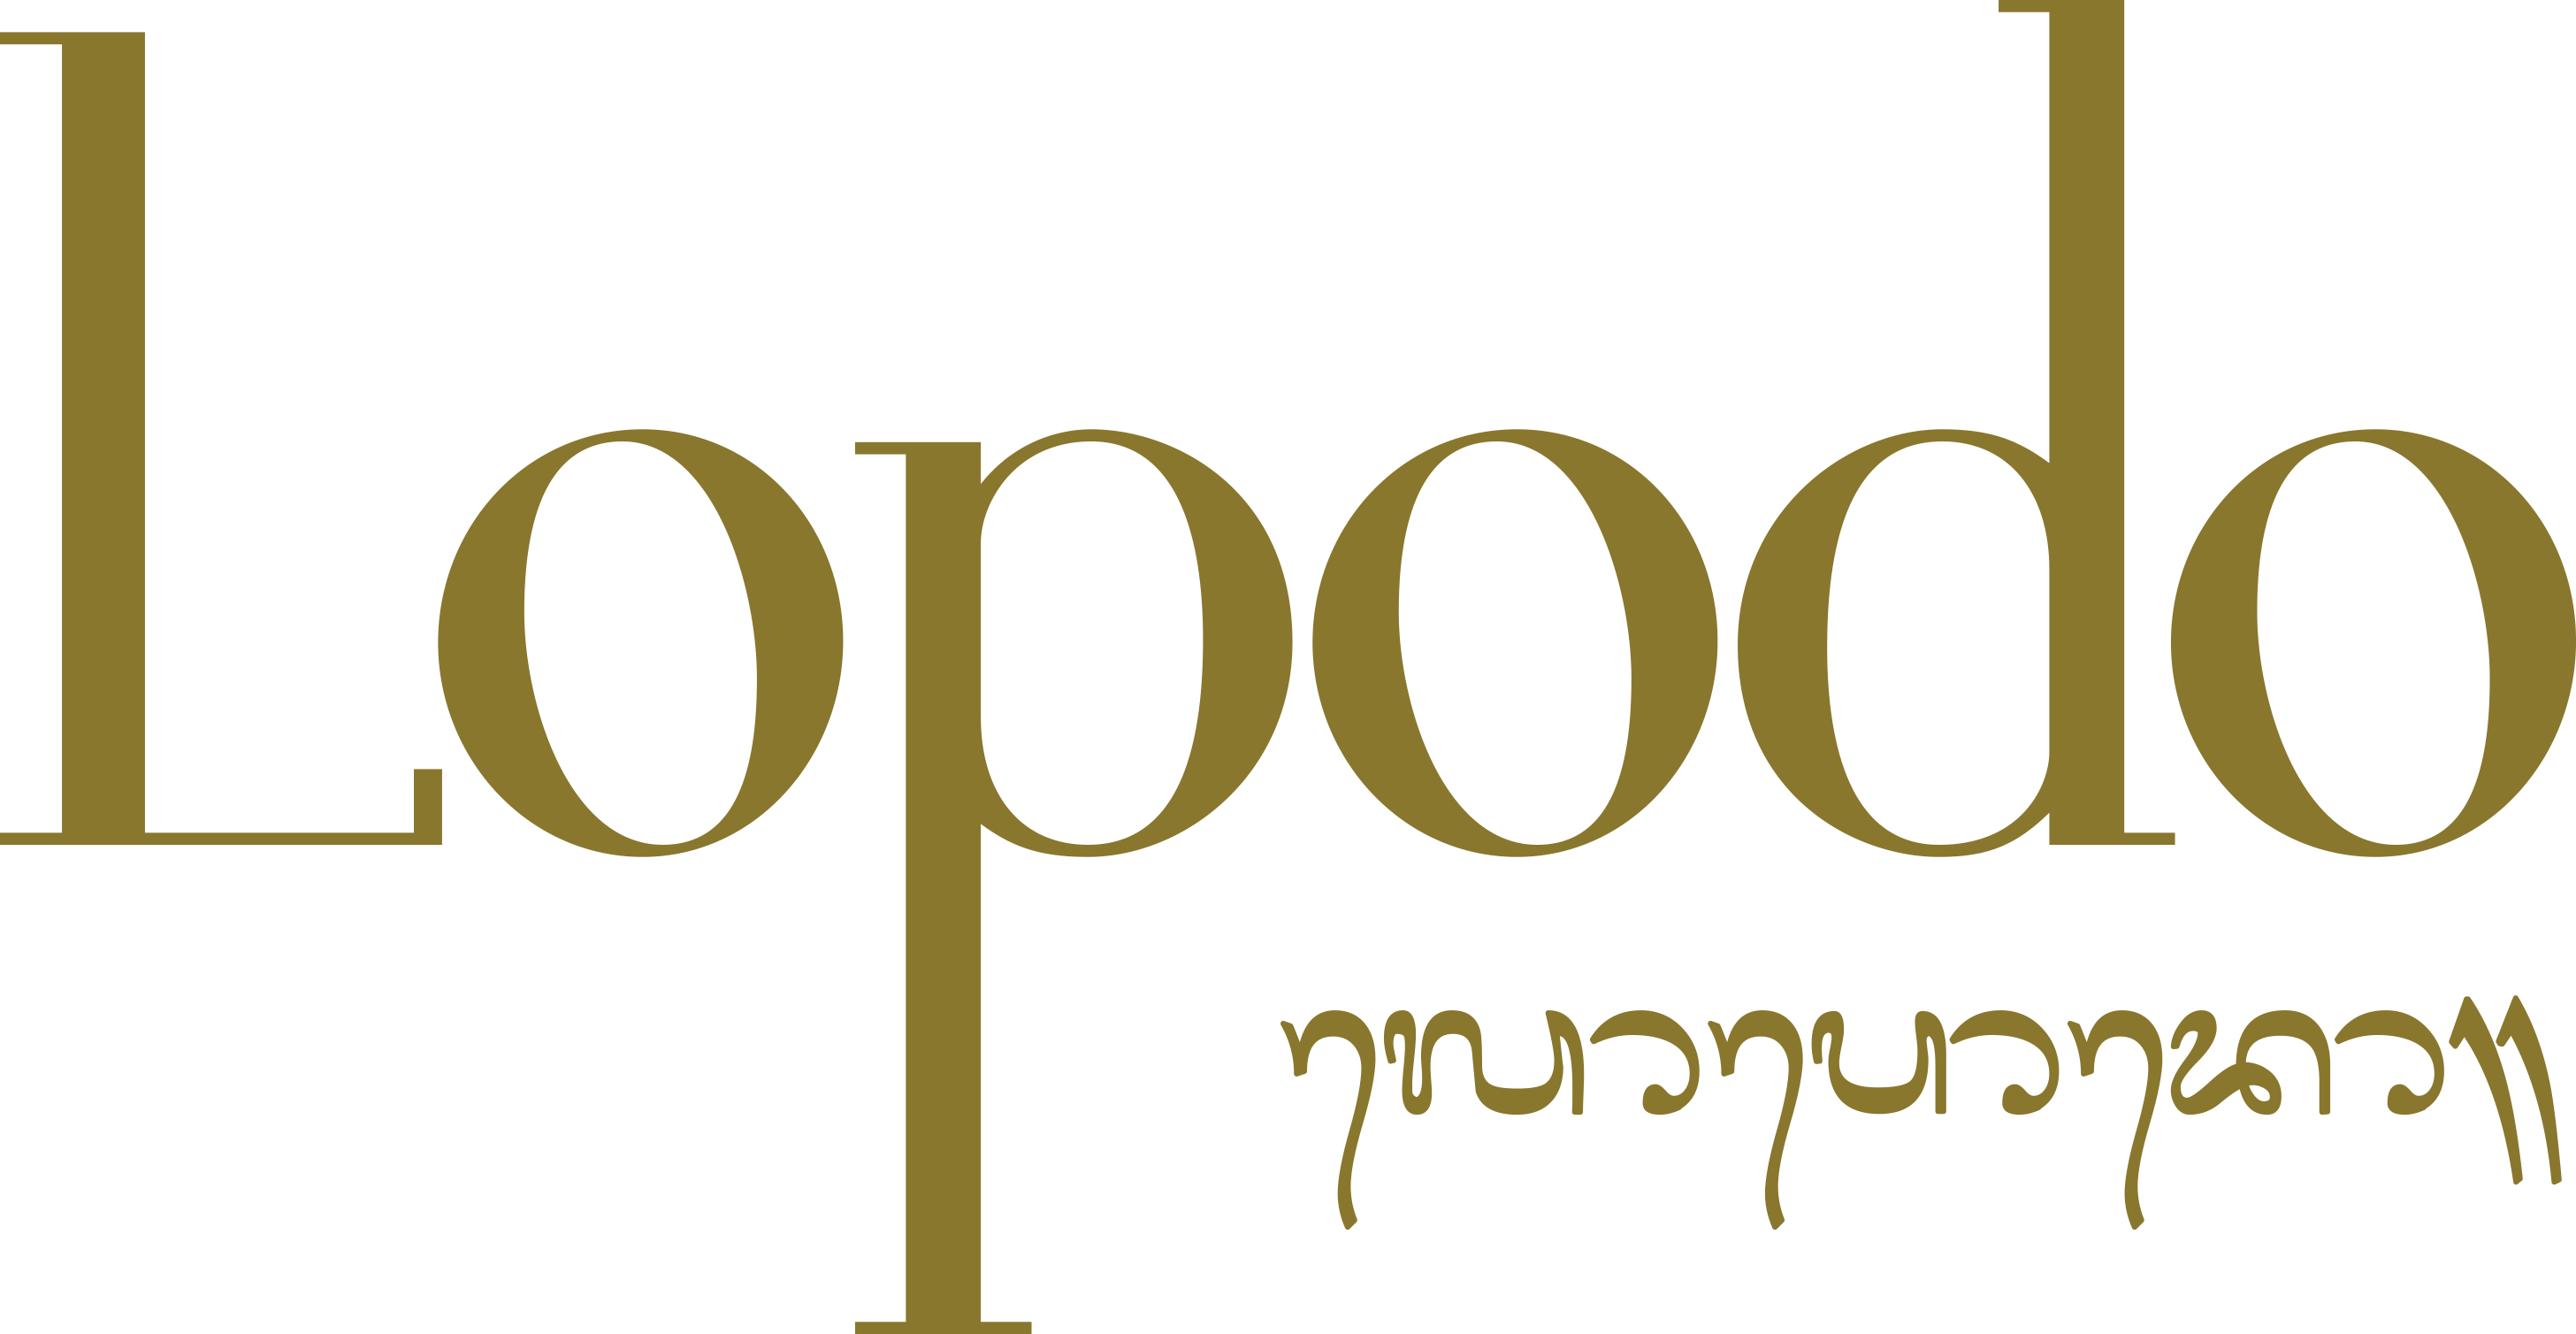 Lopodo Catering and Cafe, Canggu – Bali, Indonesia